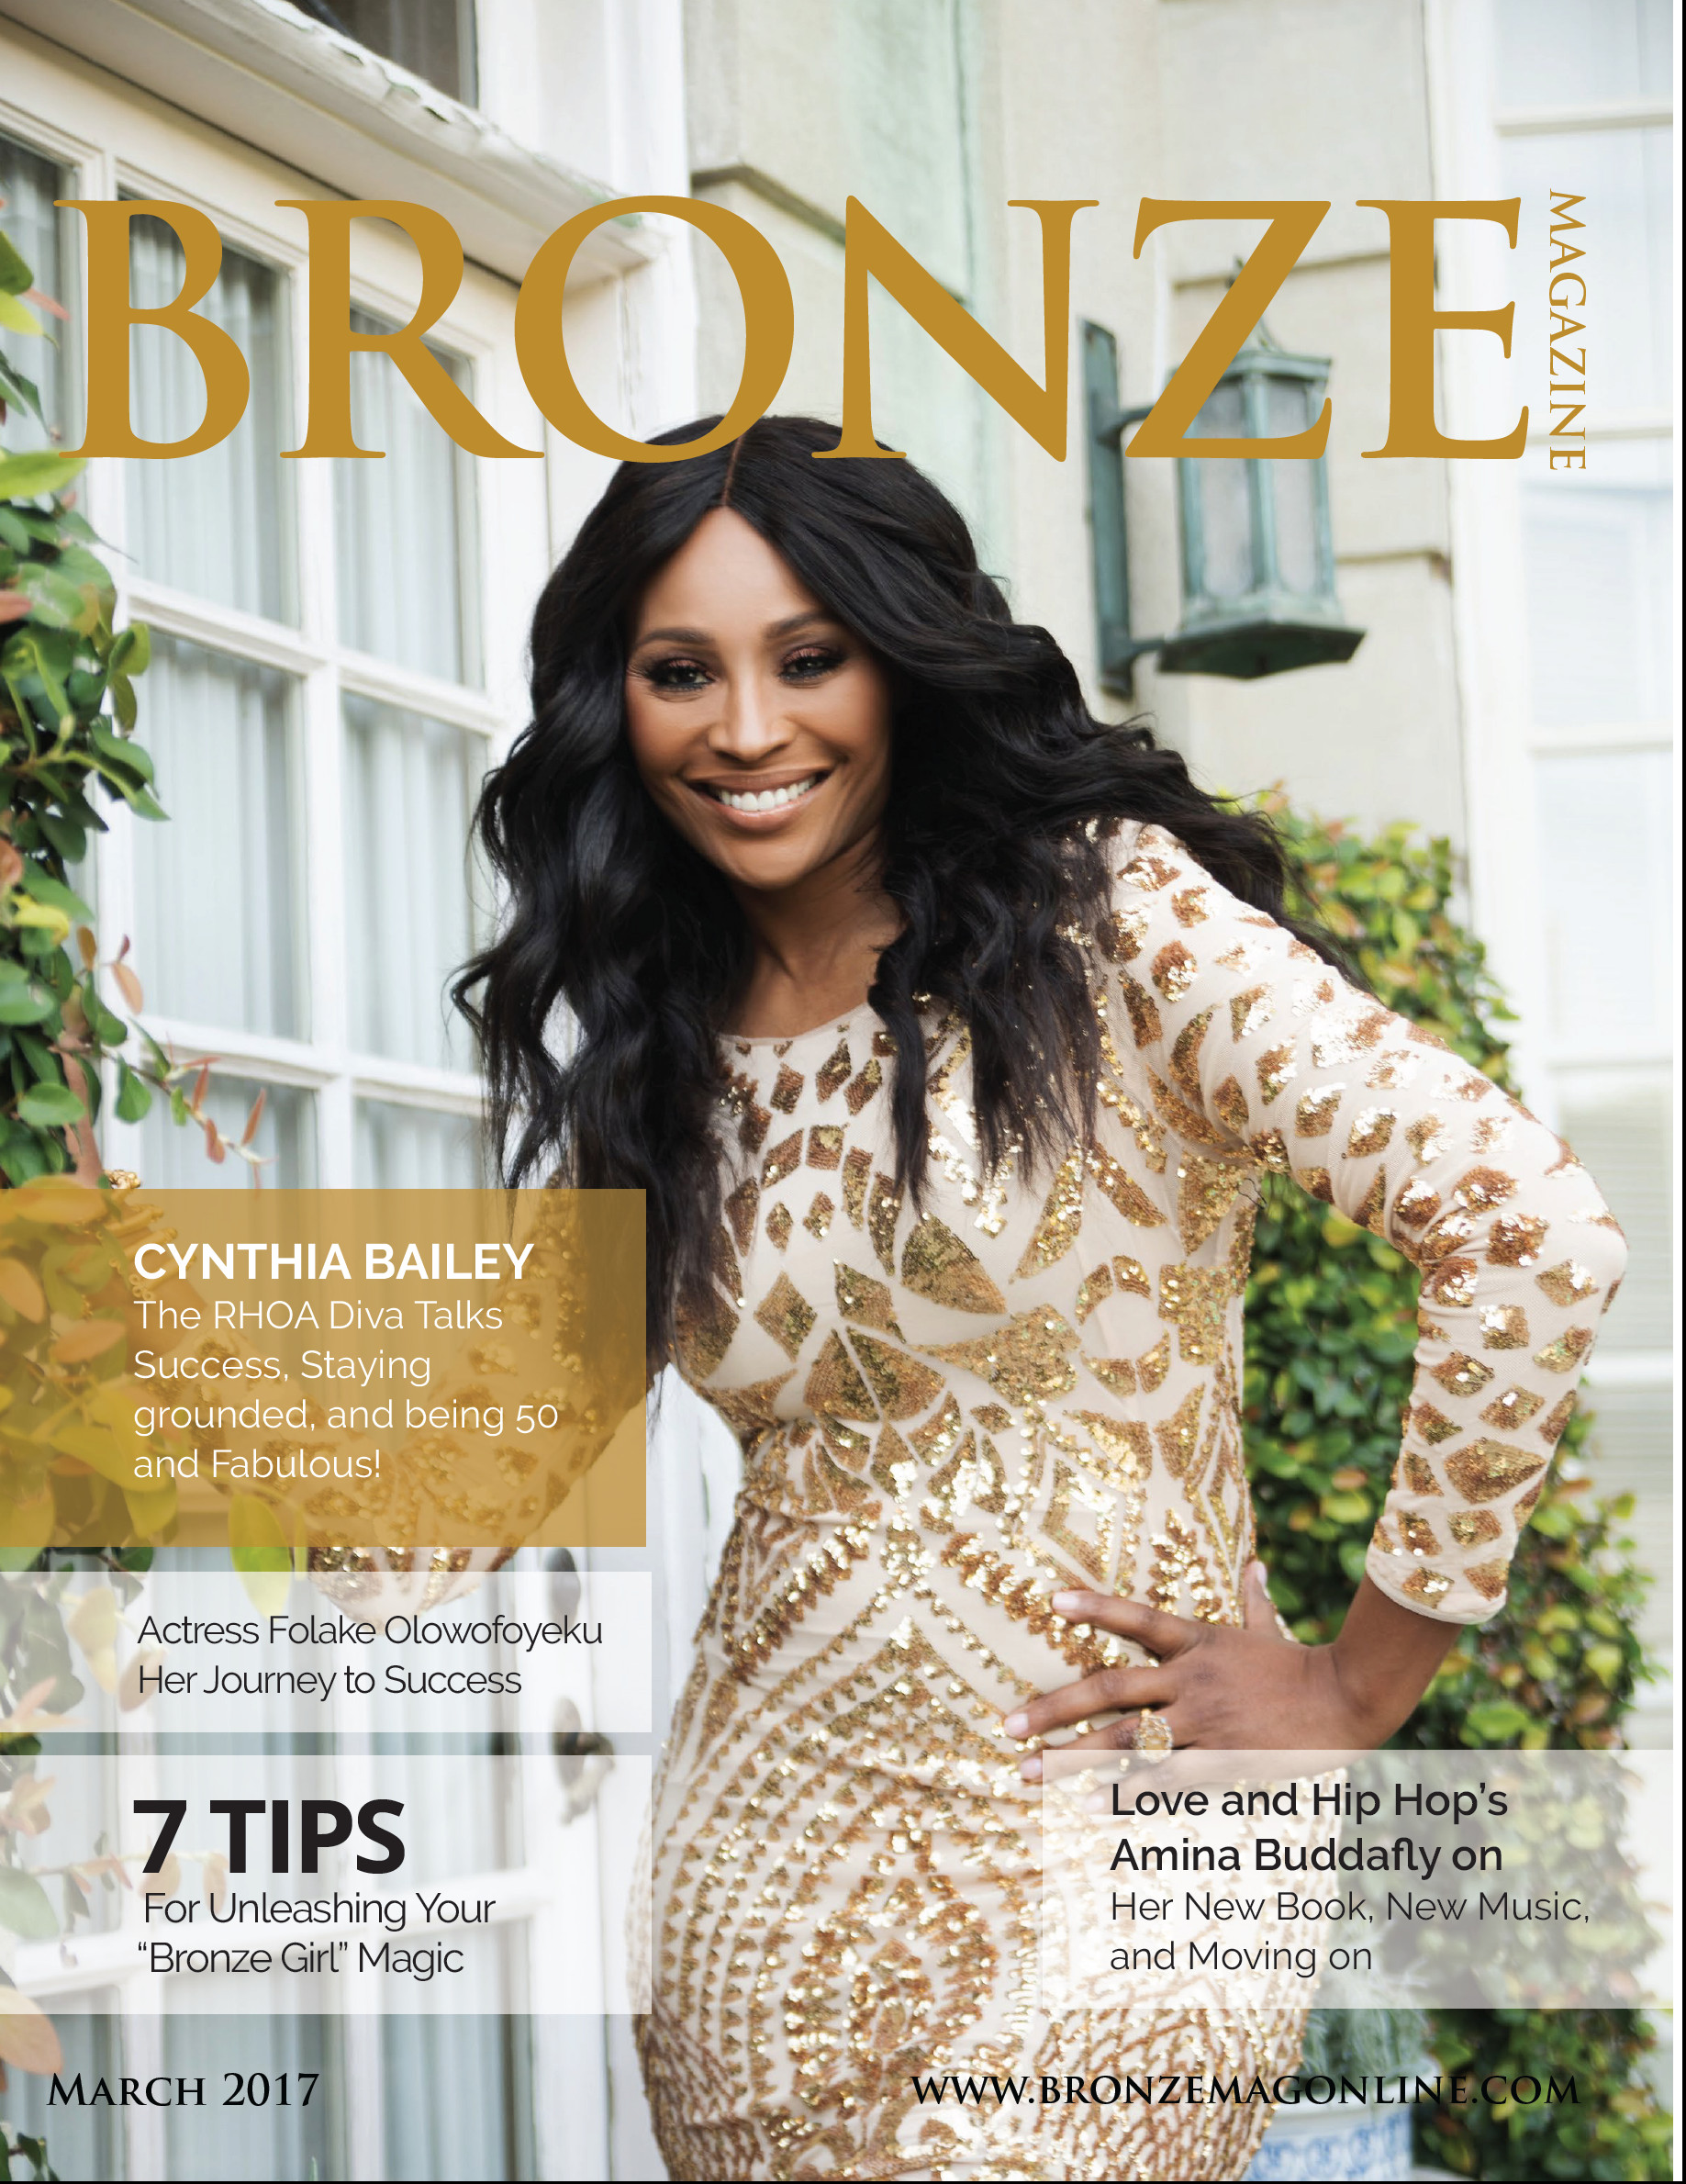 Cynthia Bailey, Real Housewife of Atlanta featured in Bronze Magazine's March Issue